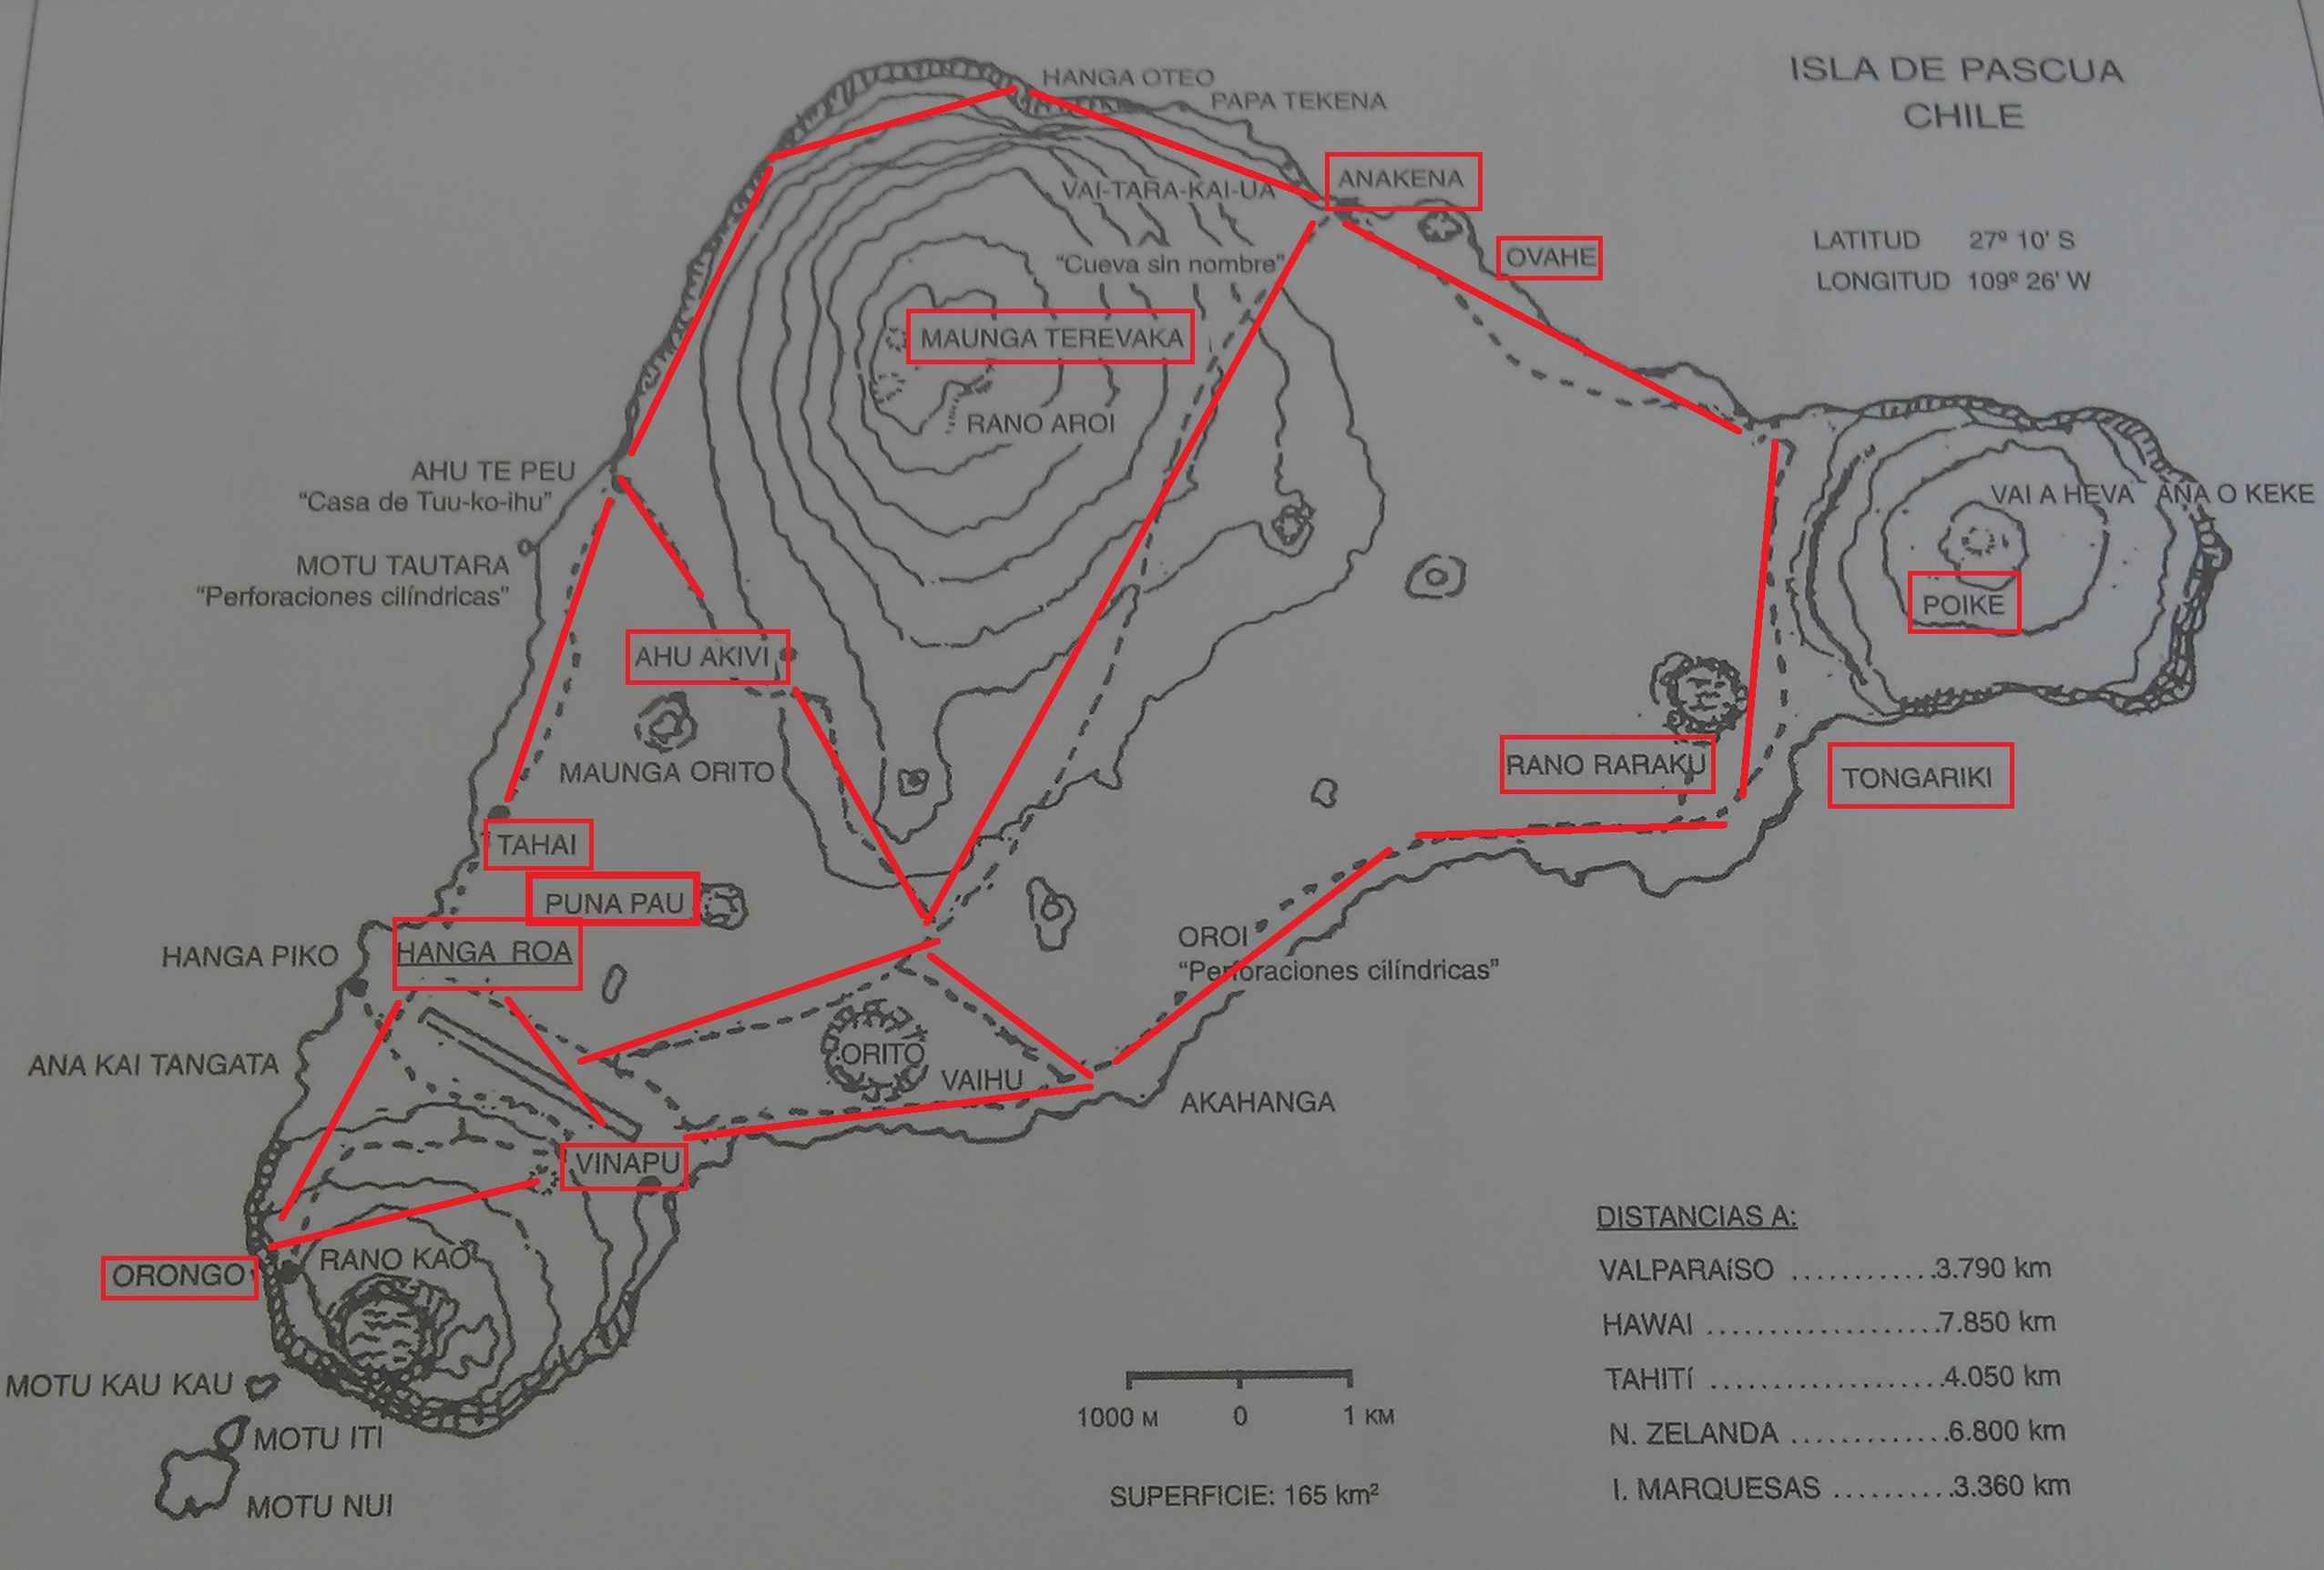 Map of Rapa Nui